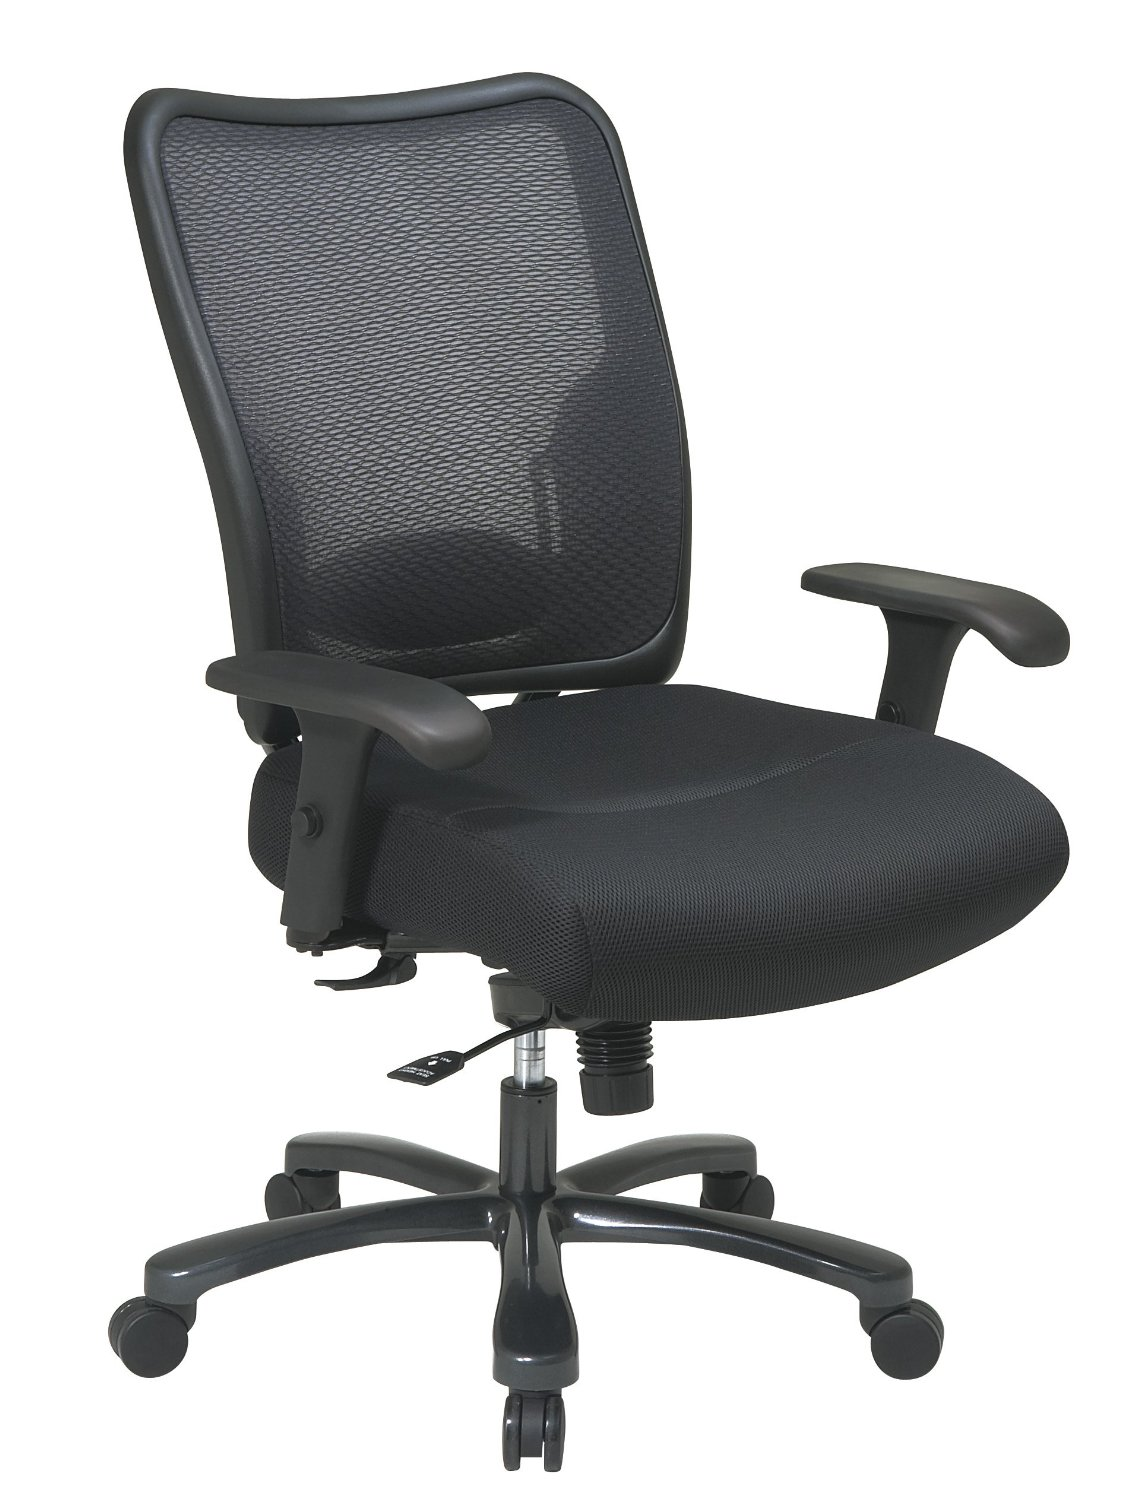 Ergonomic office chair kneeling posture - Ergonomic Task Chars